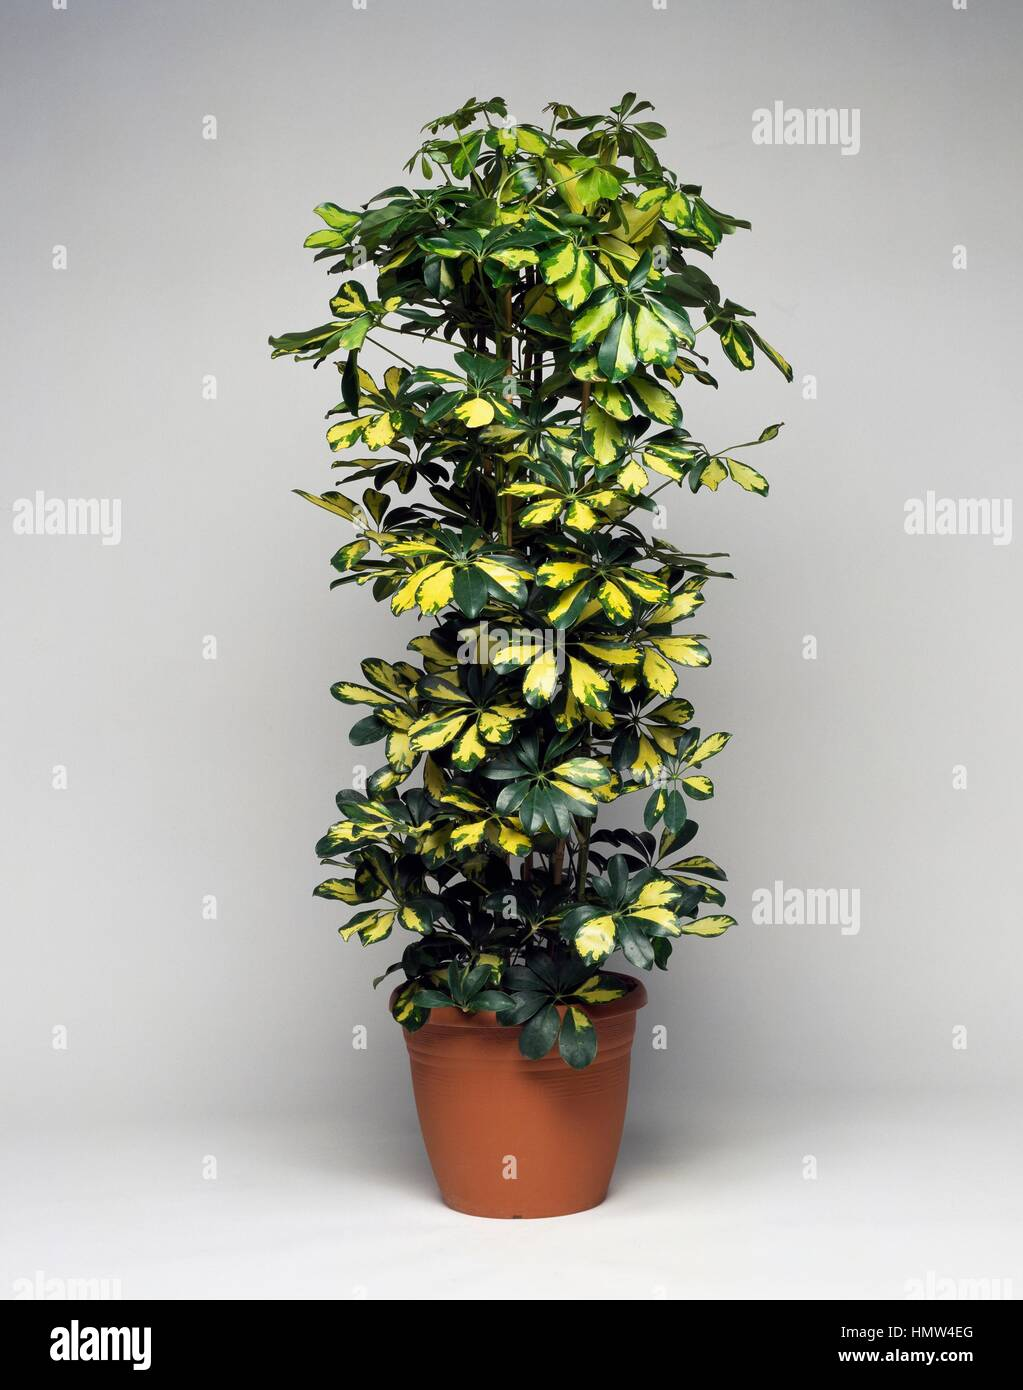 schefflera gold capella stock photos schefflera gold capella stock images alamy. Black Bedroom Furniture Sets. Home Design Ideas